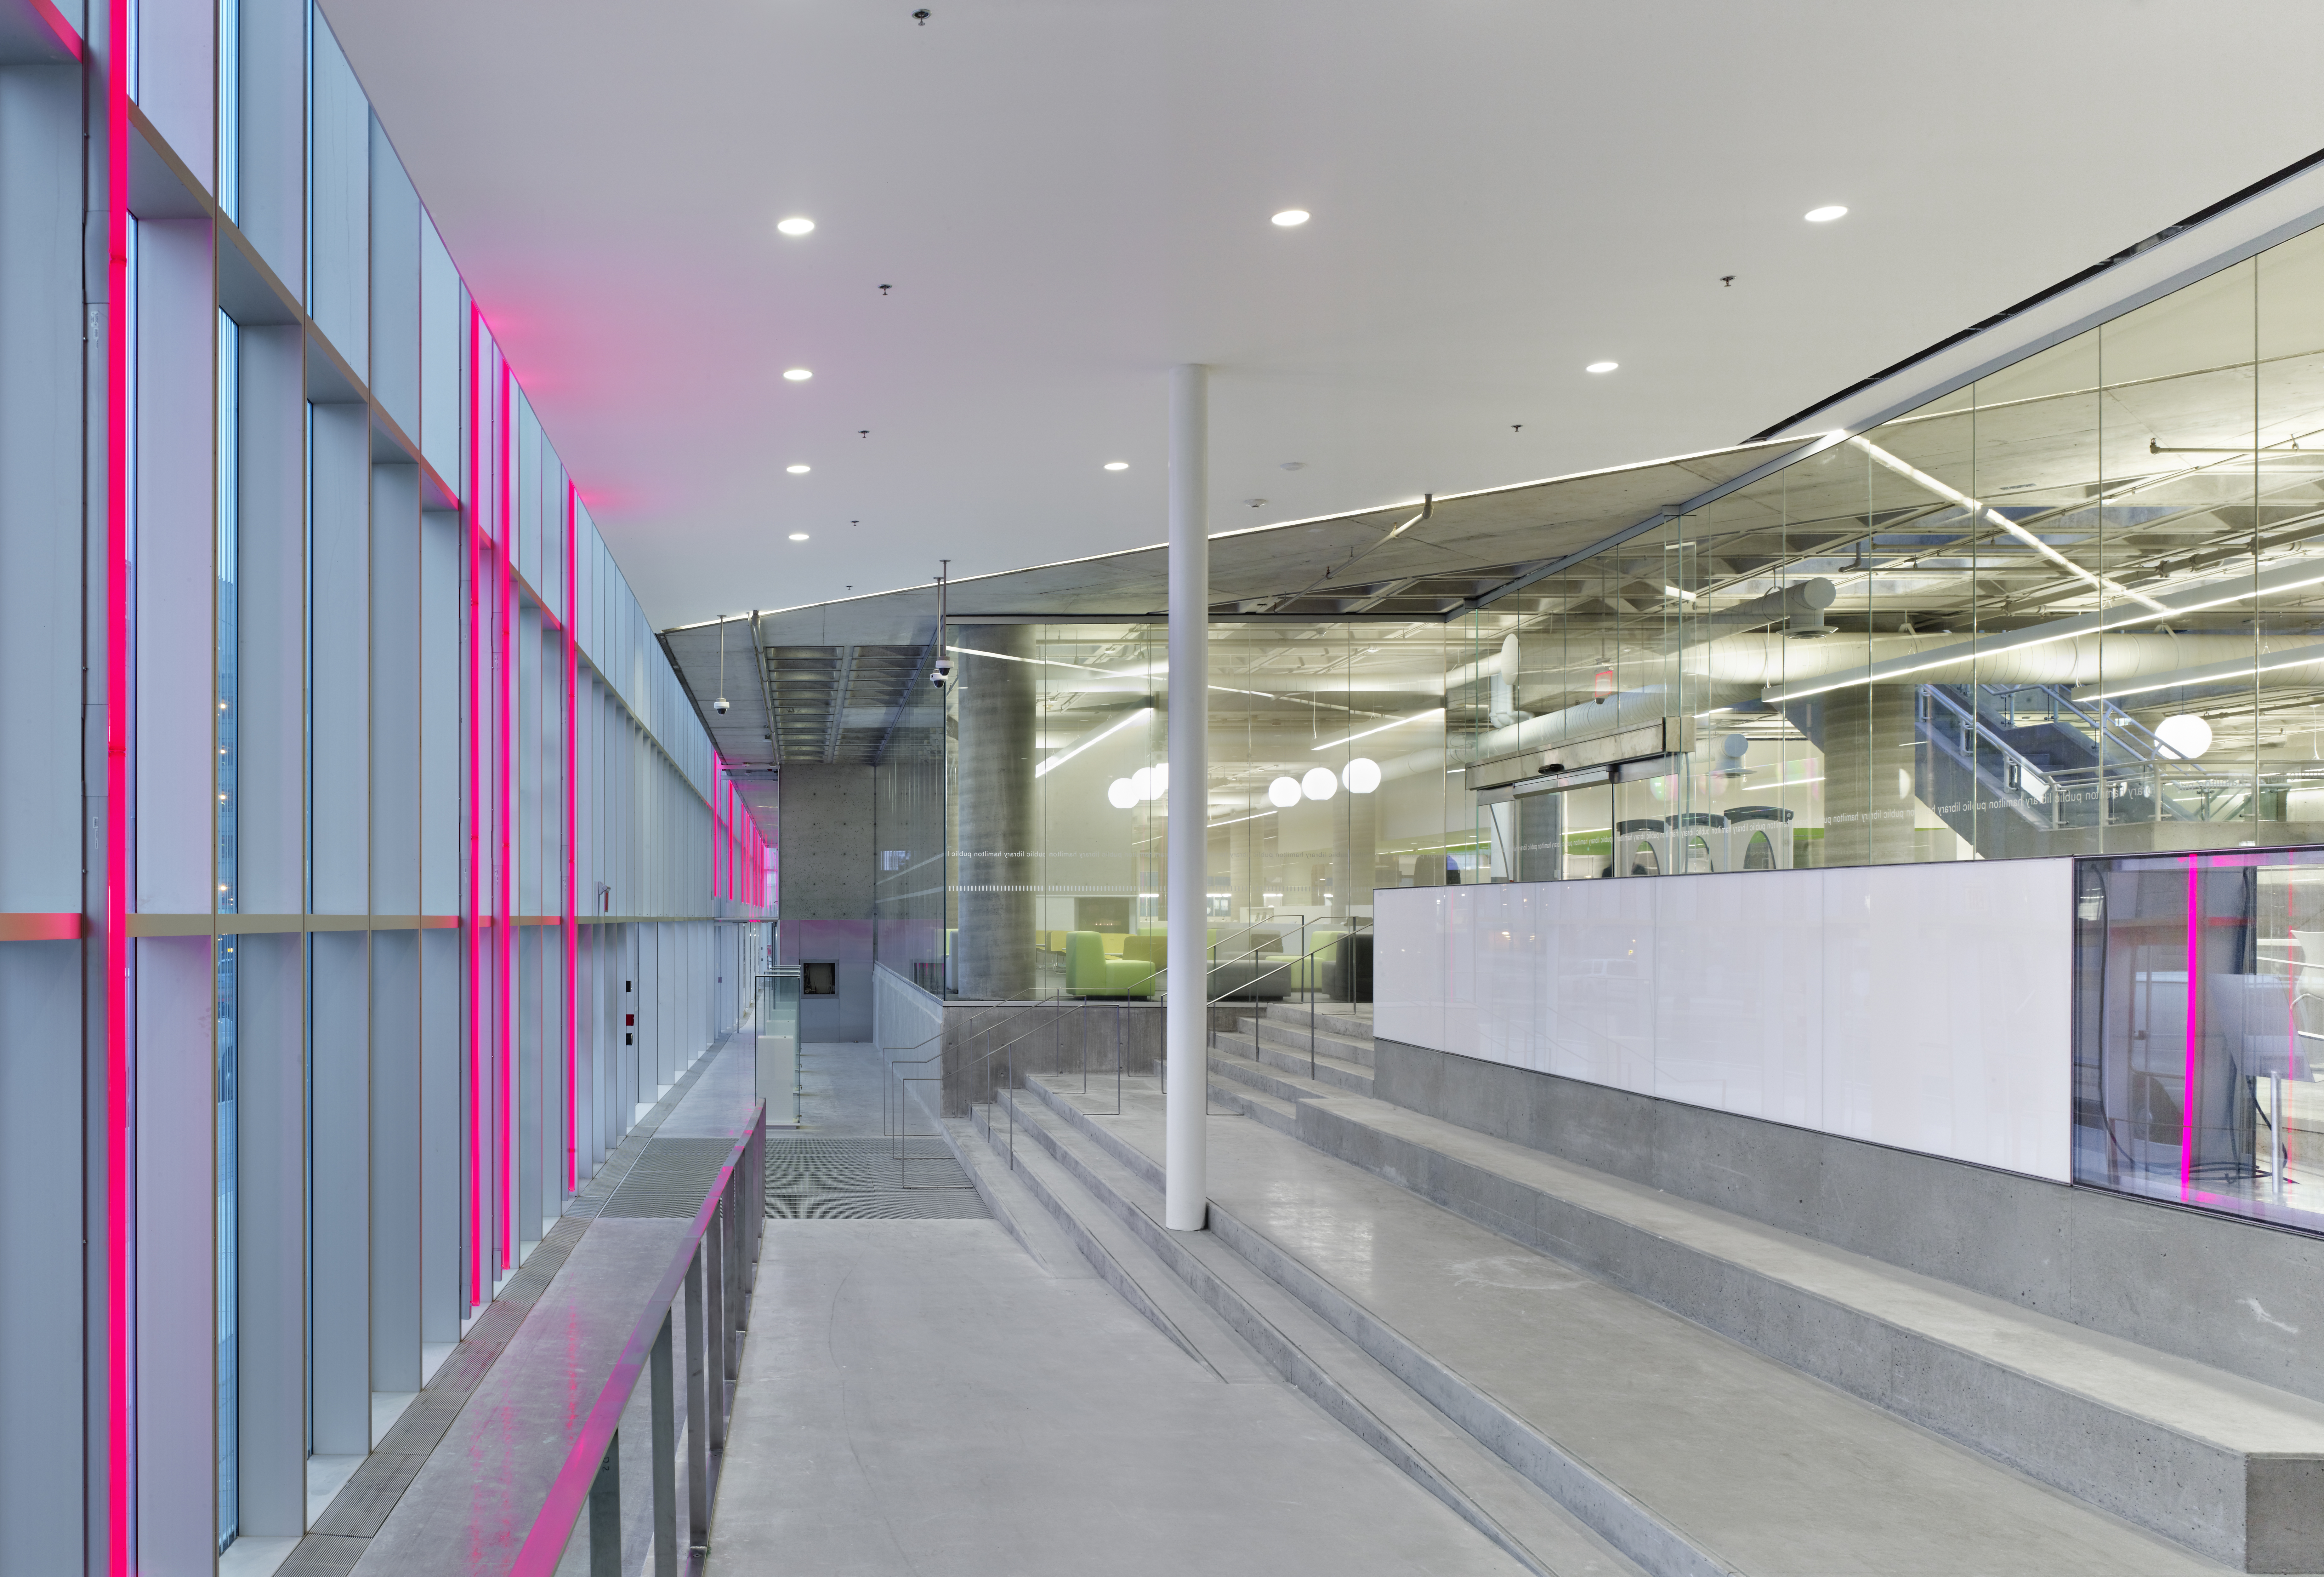 Architectural firm award 2018 royal architectural institute of canada